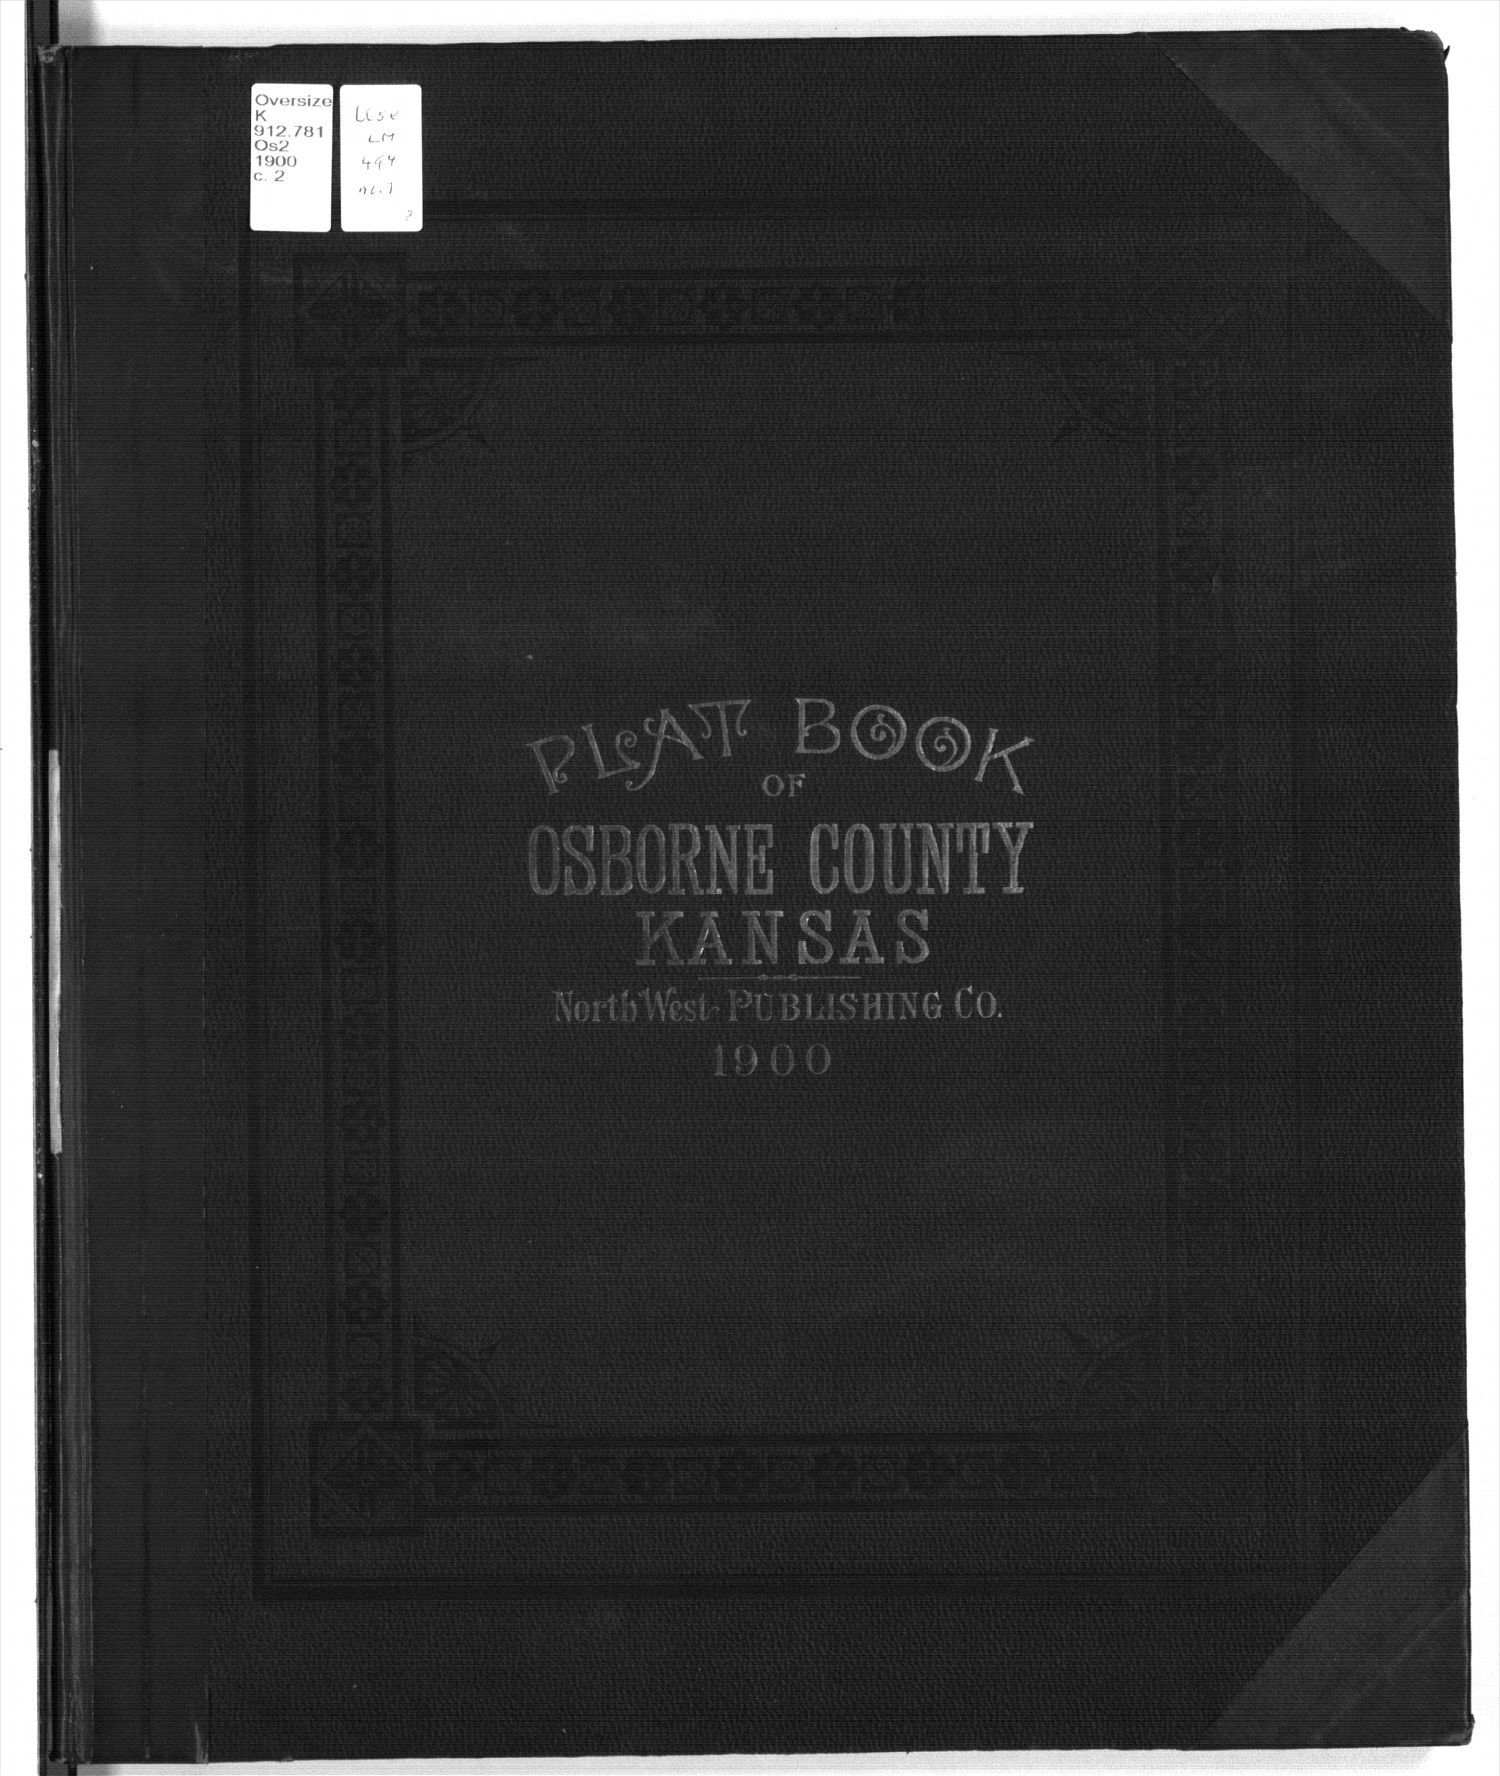 Plat book of Osborne County, Kansas - Front Cover